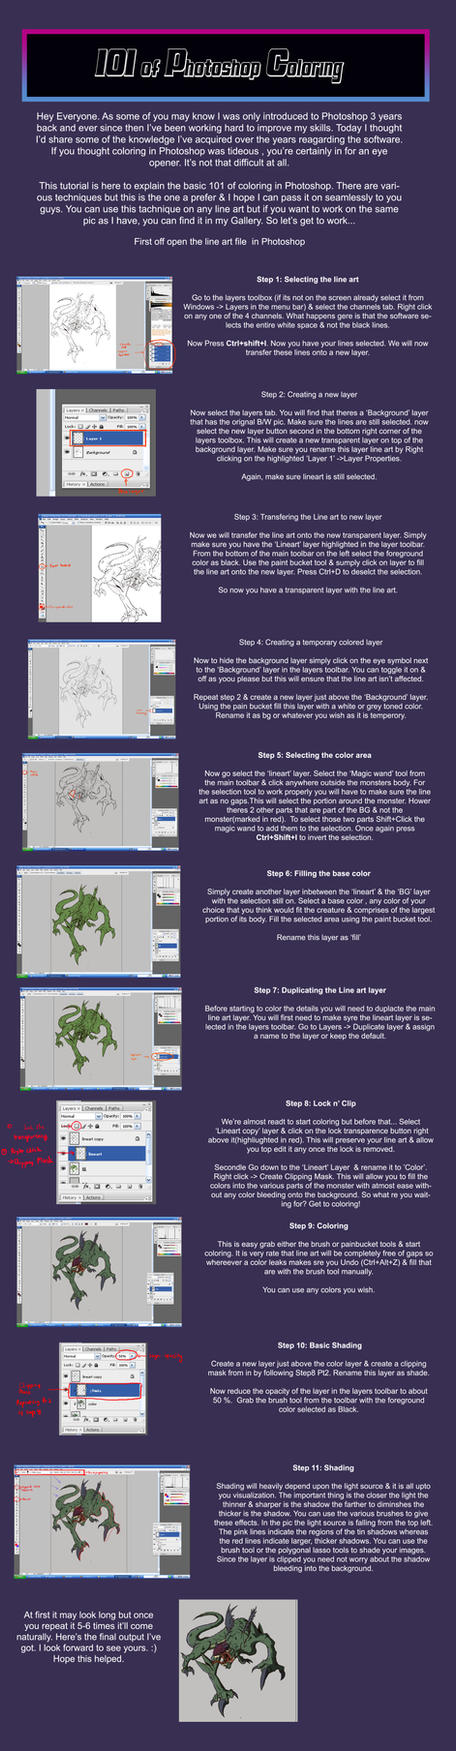 Photoshop coloring tutorial by jazylh on deviantart photoshop coloring tutorial by jazylh baditri Images